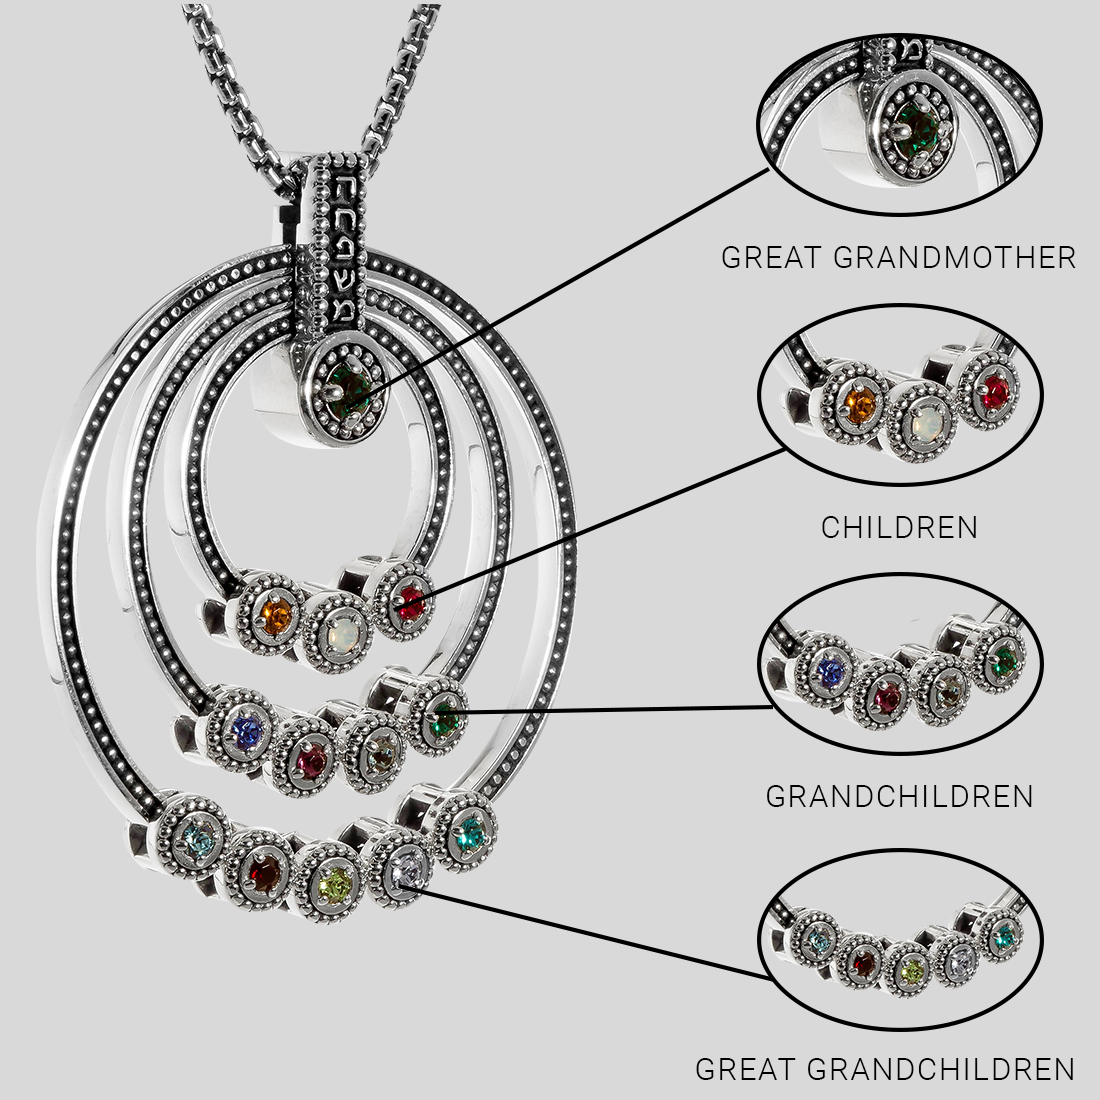 Hebrew Family Great Grandmother Birthstone Necklace | Jewish Necklace | Judaica | Personalized Gift